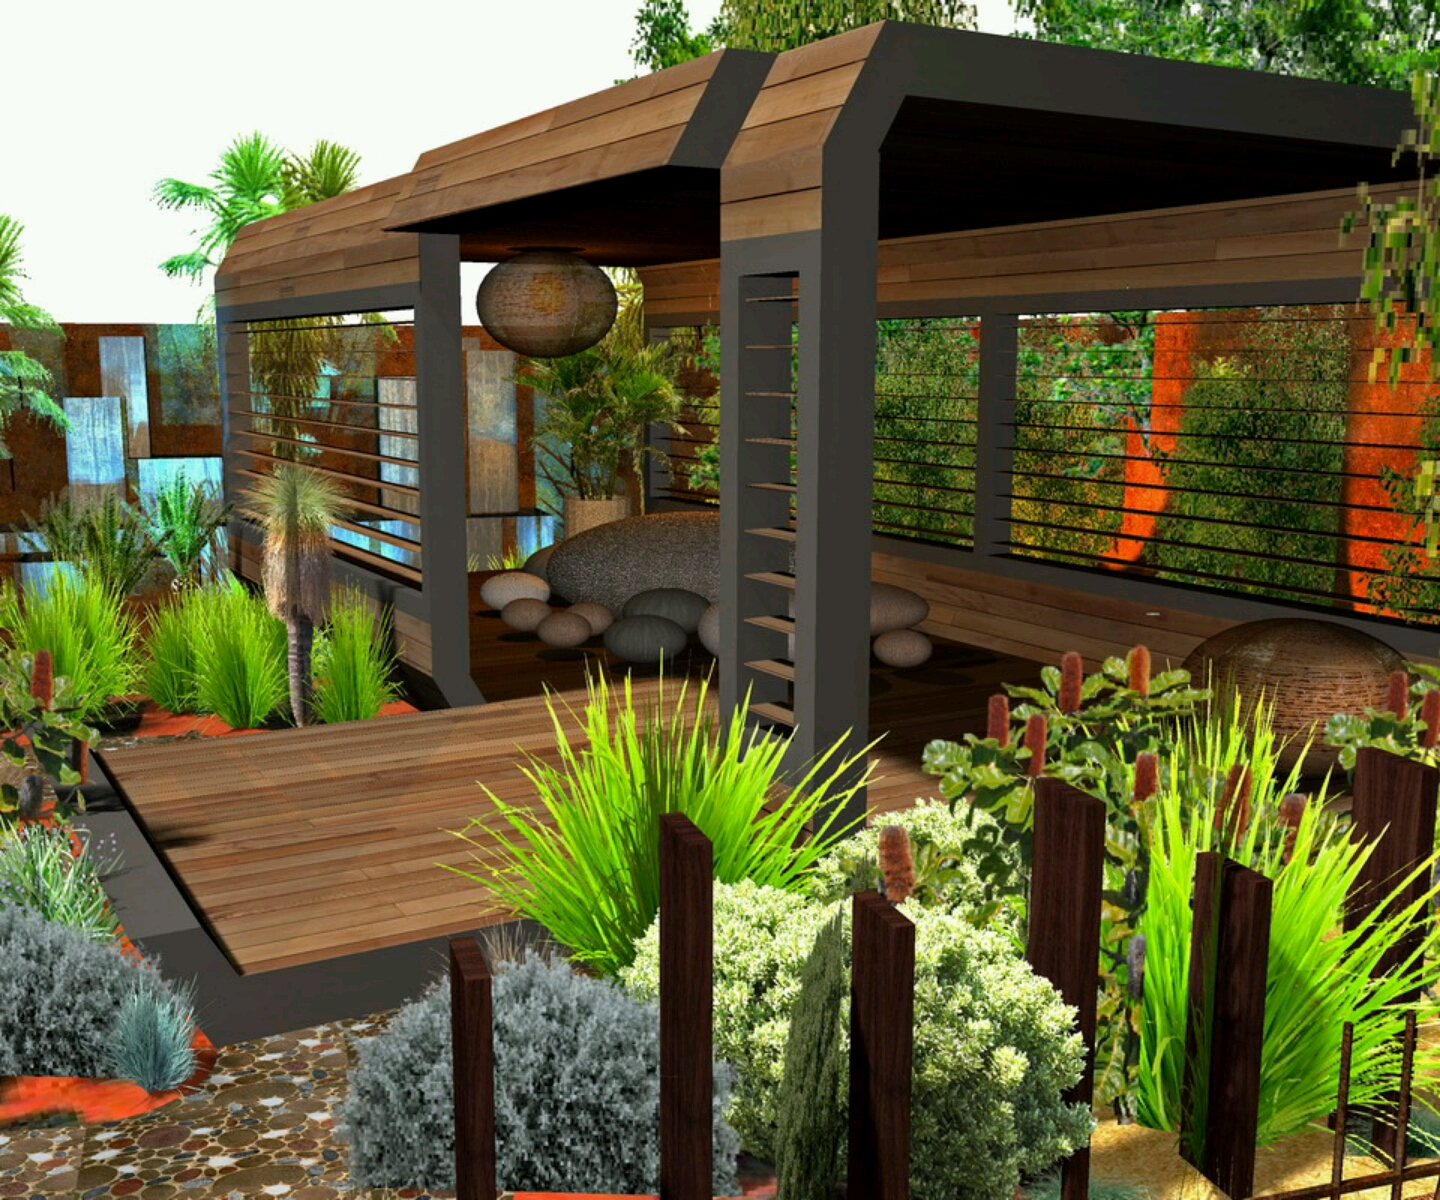 New home designs latest. Modern homes garden designs ideas.